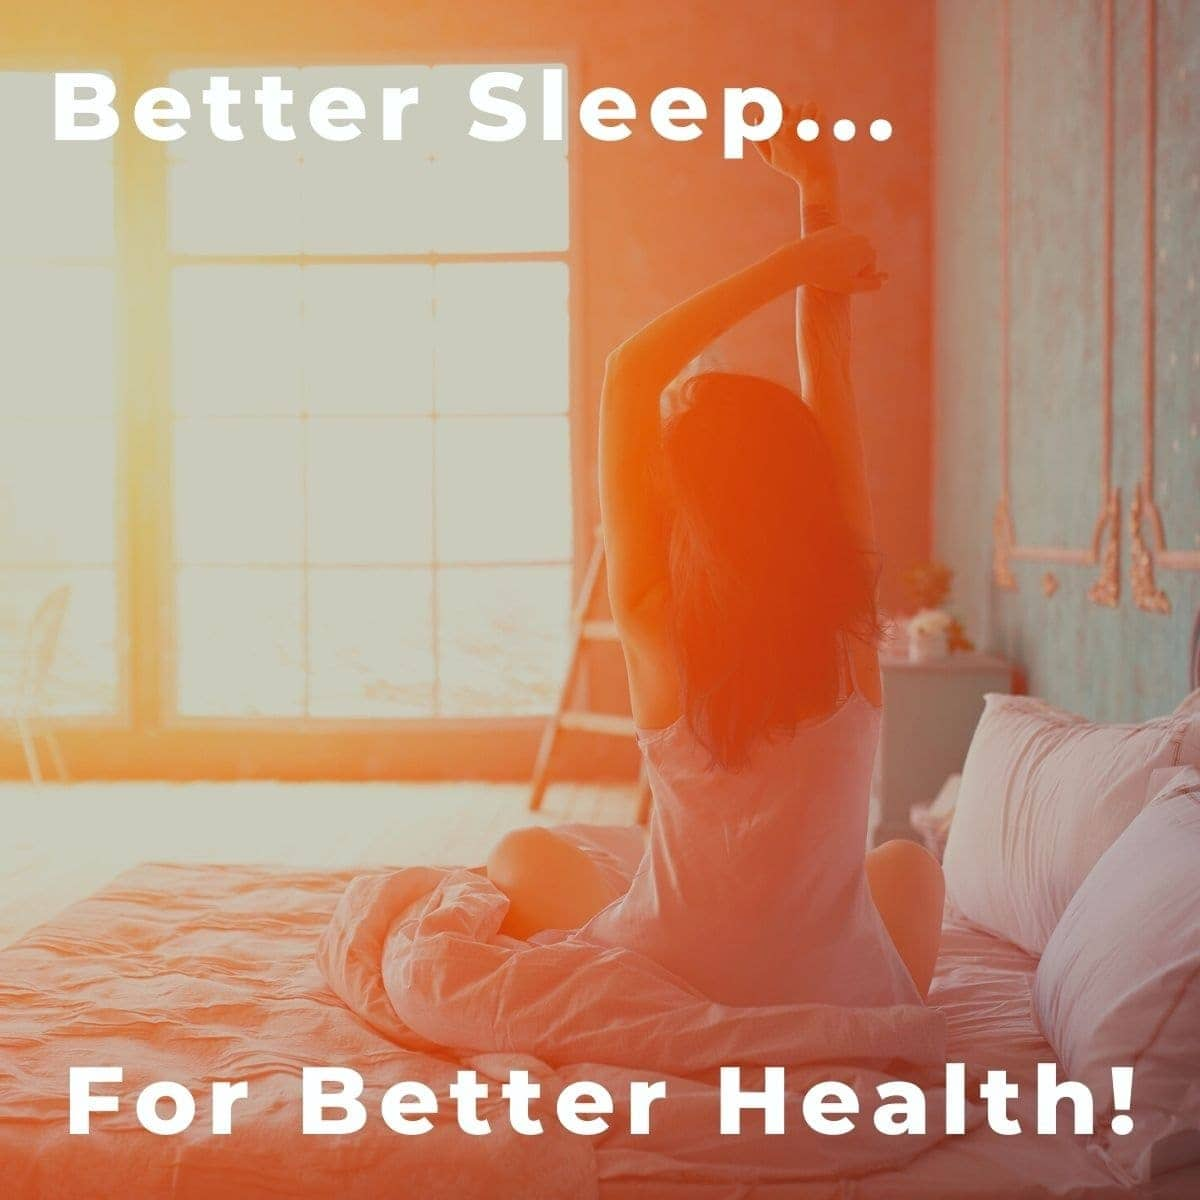 Image of a woman sitting up in bed and stretching-text overlay